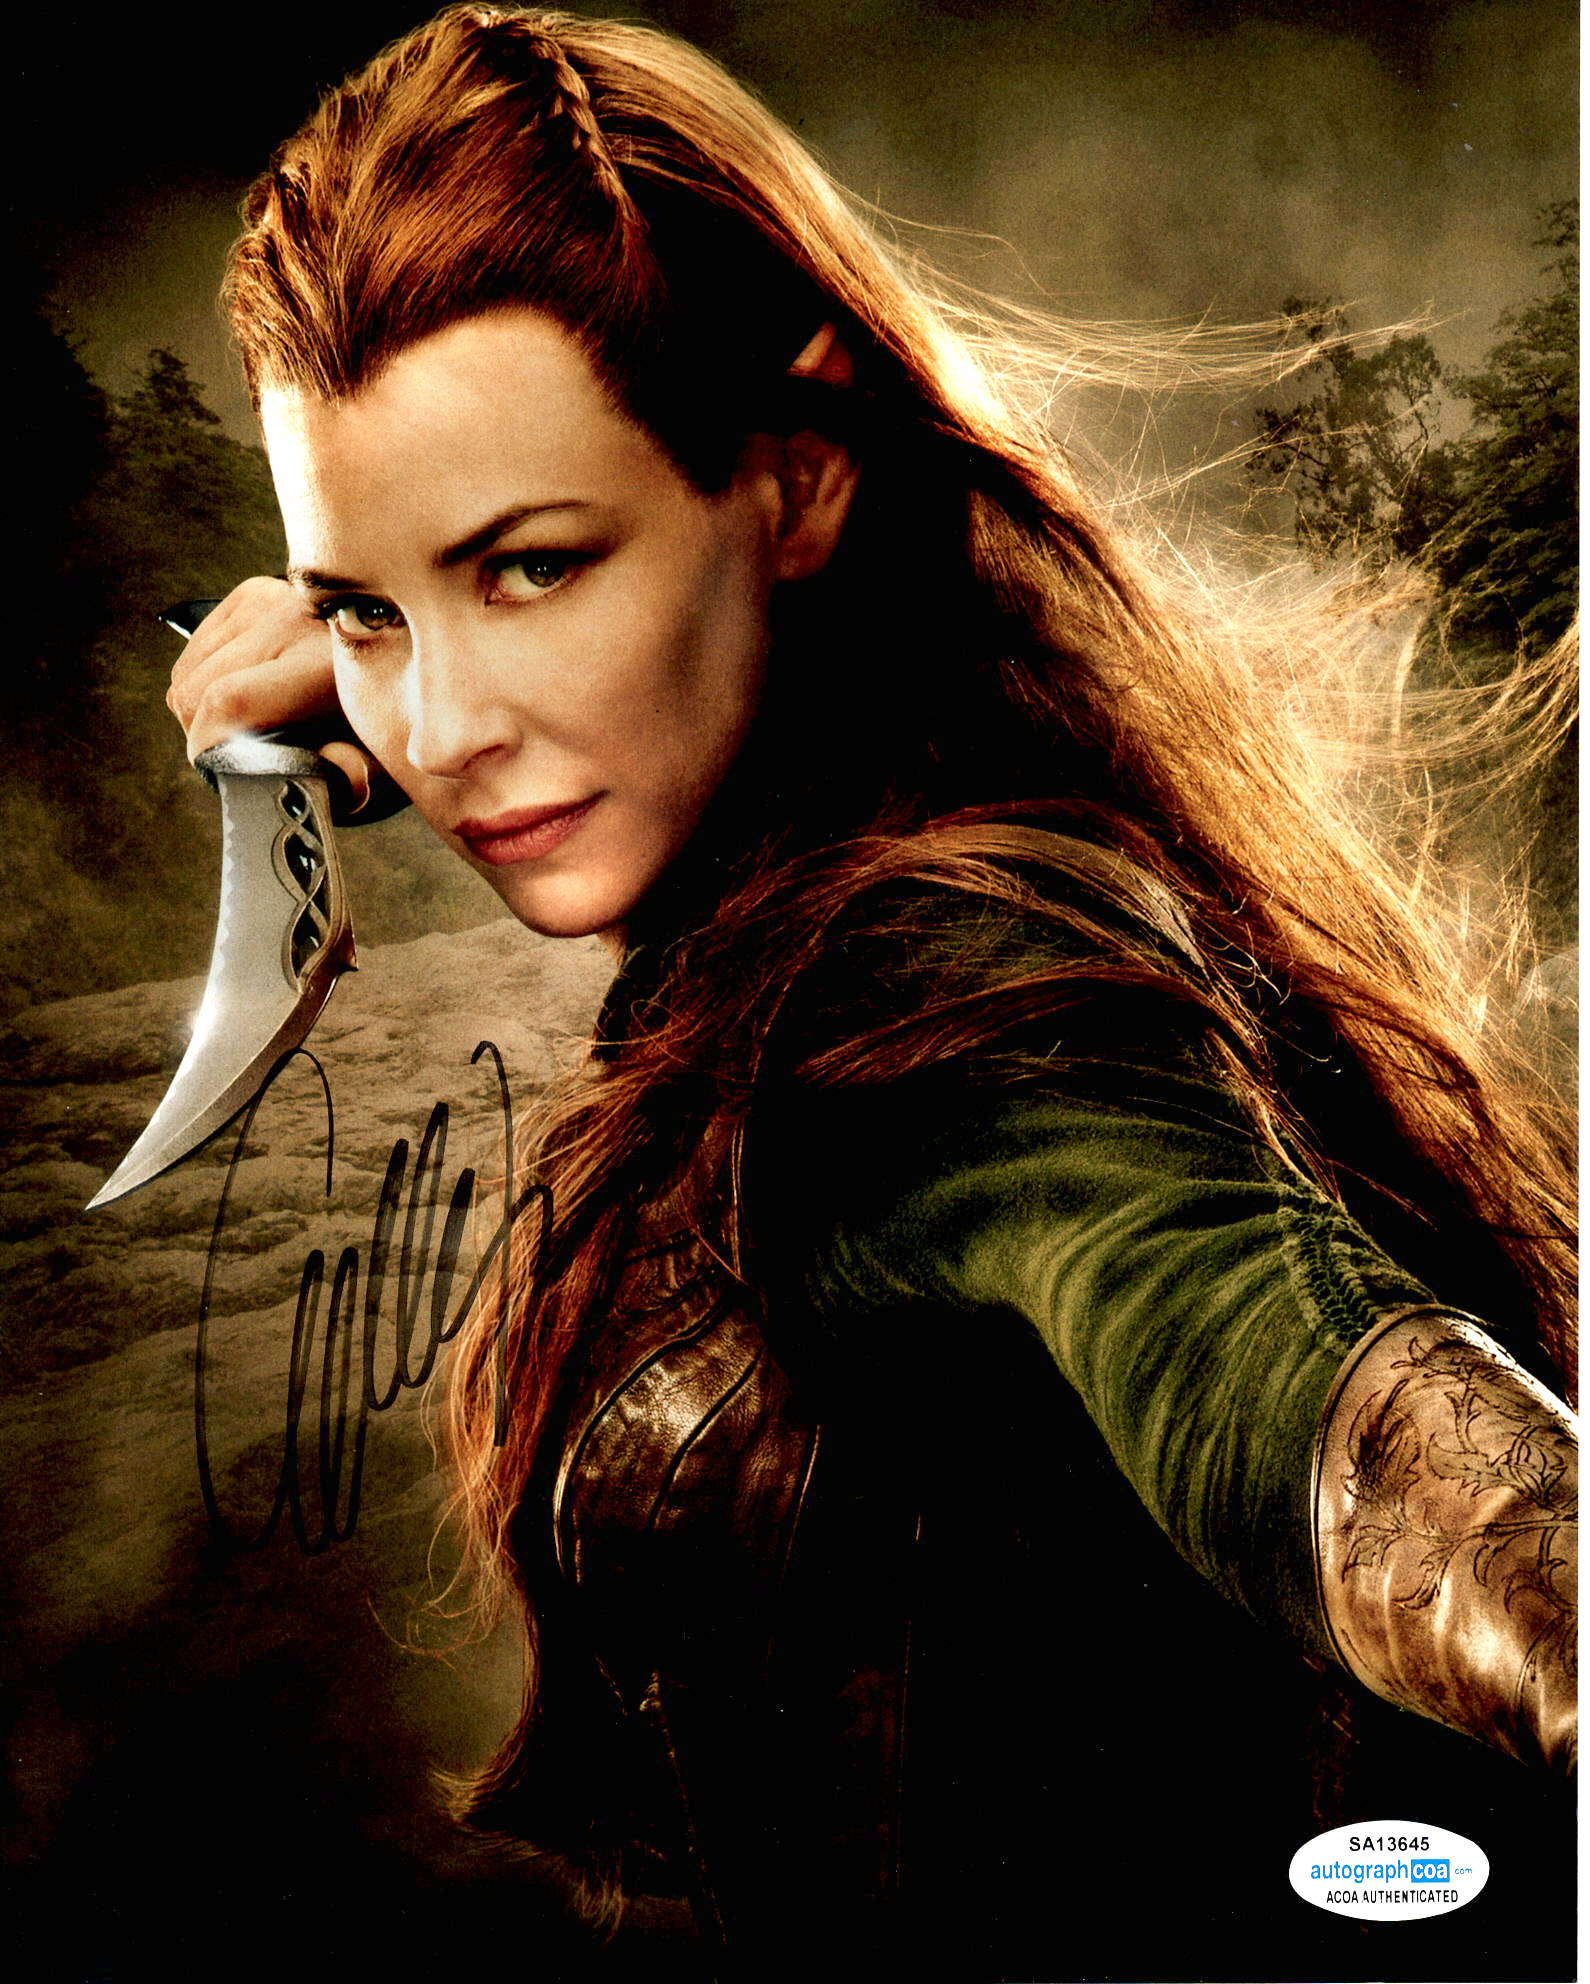 Evangeline Lilly The Hobbit Signed Autograph 8x10 Photo #3